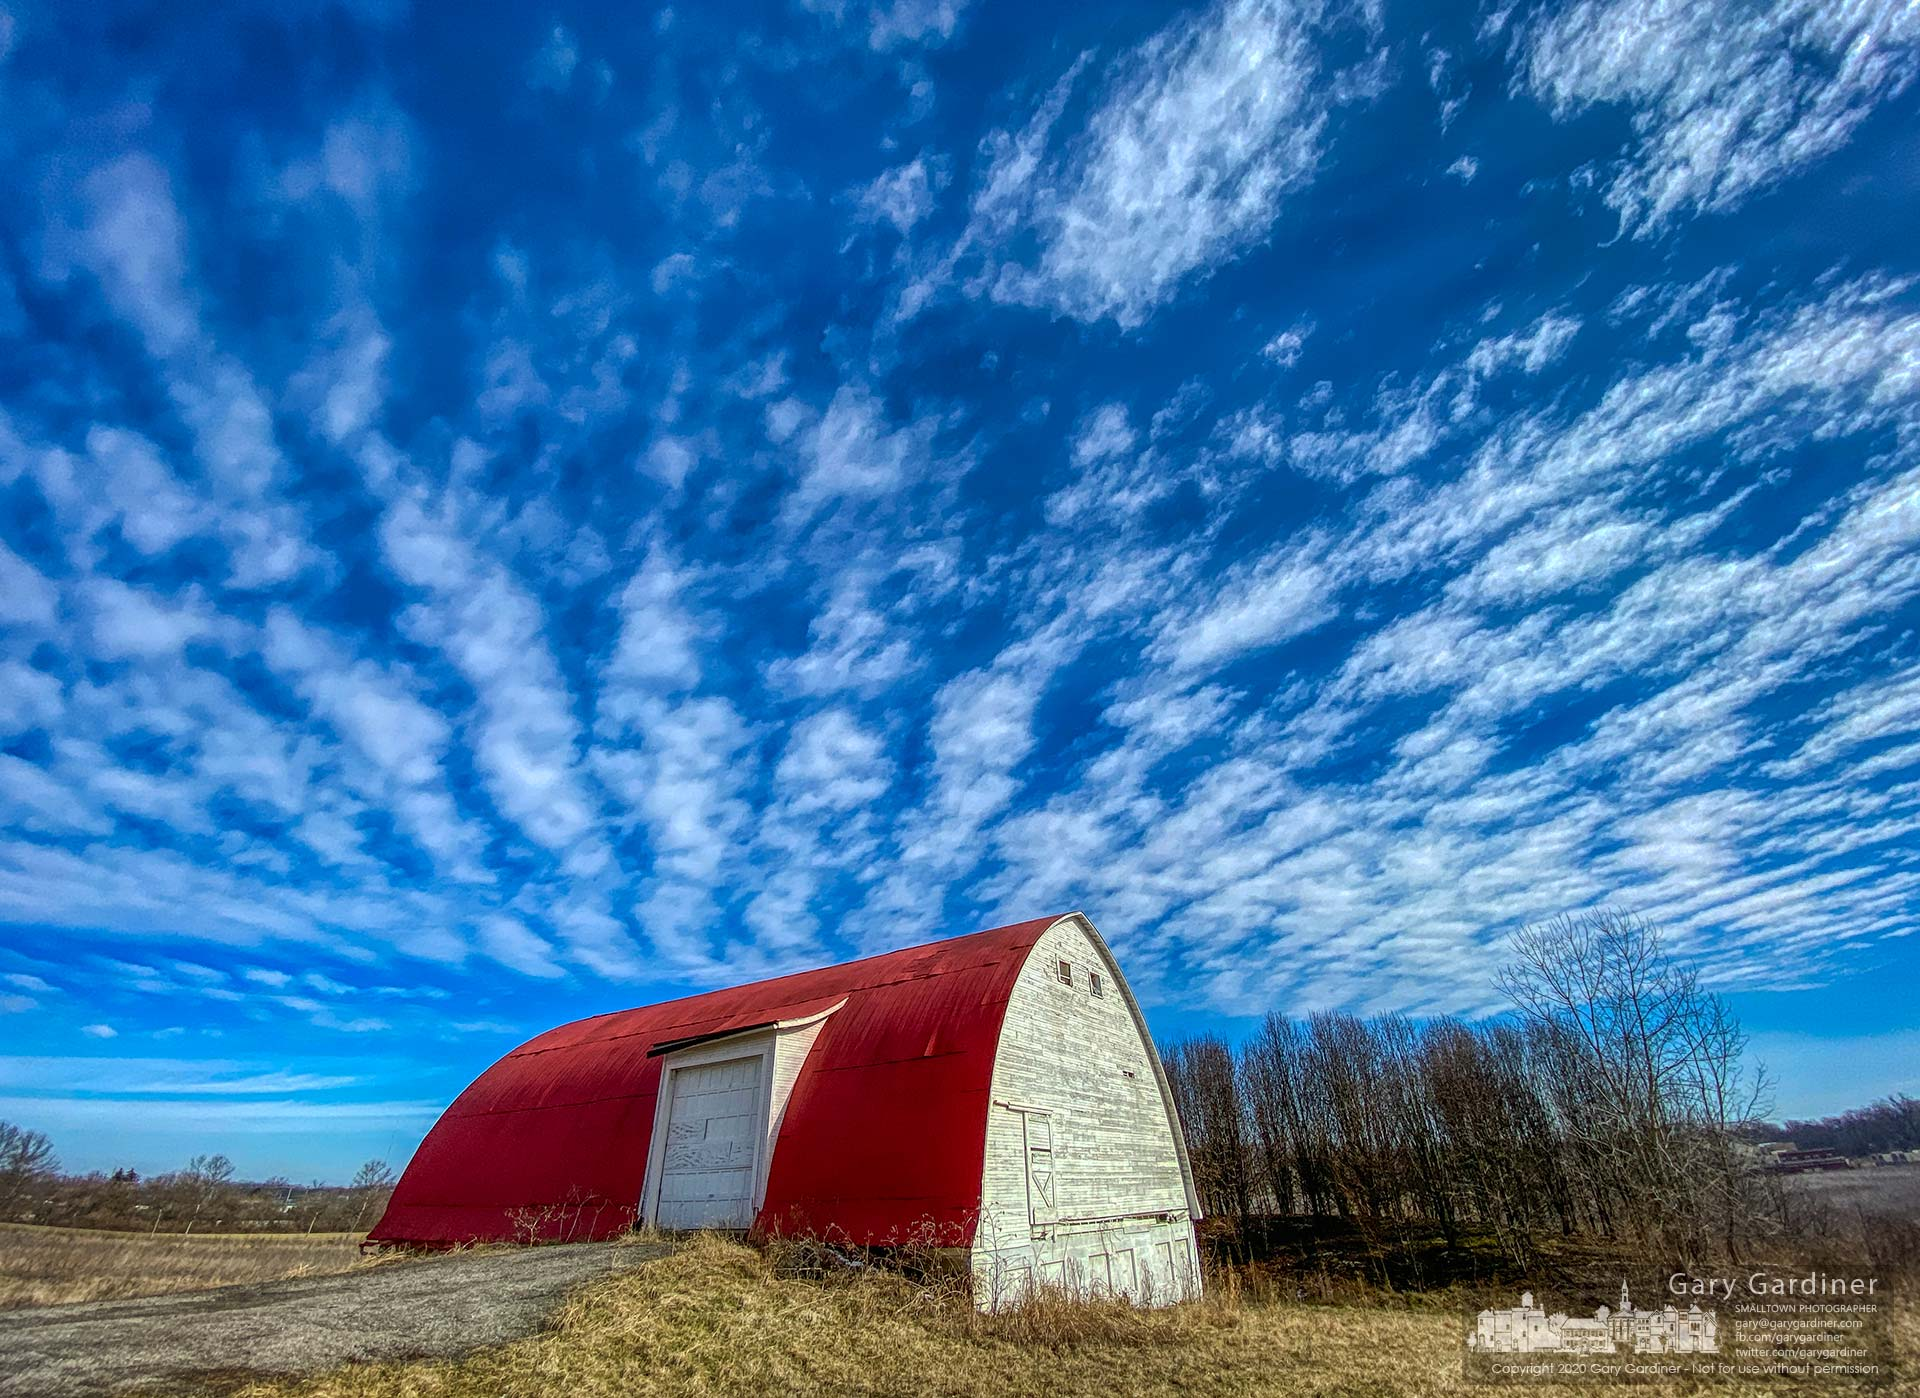 A thin layer of Altocumulus clouds drifts over the barn on the Braun Farm as slightly higher than normal temperatures brought warmth to a winters day. My Final Photo for Feb. 17, 2020.